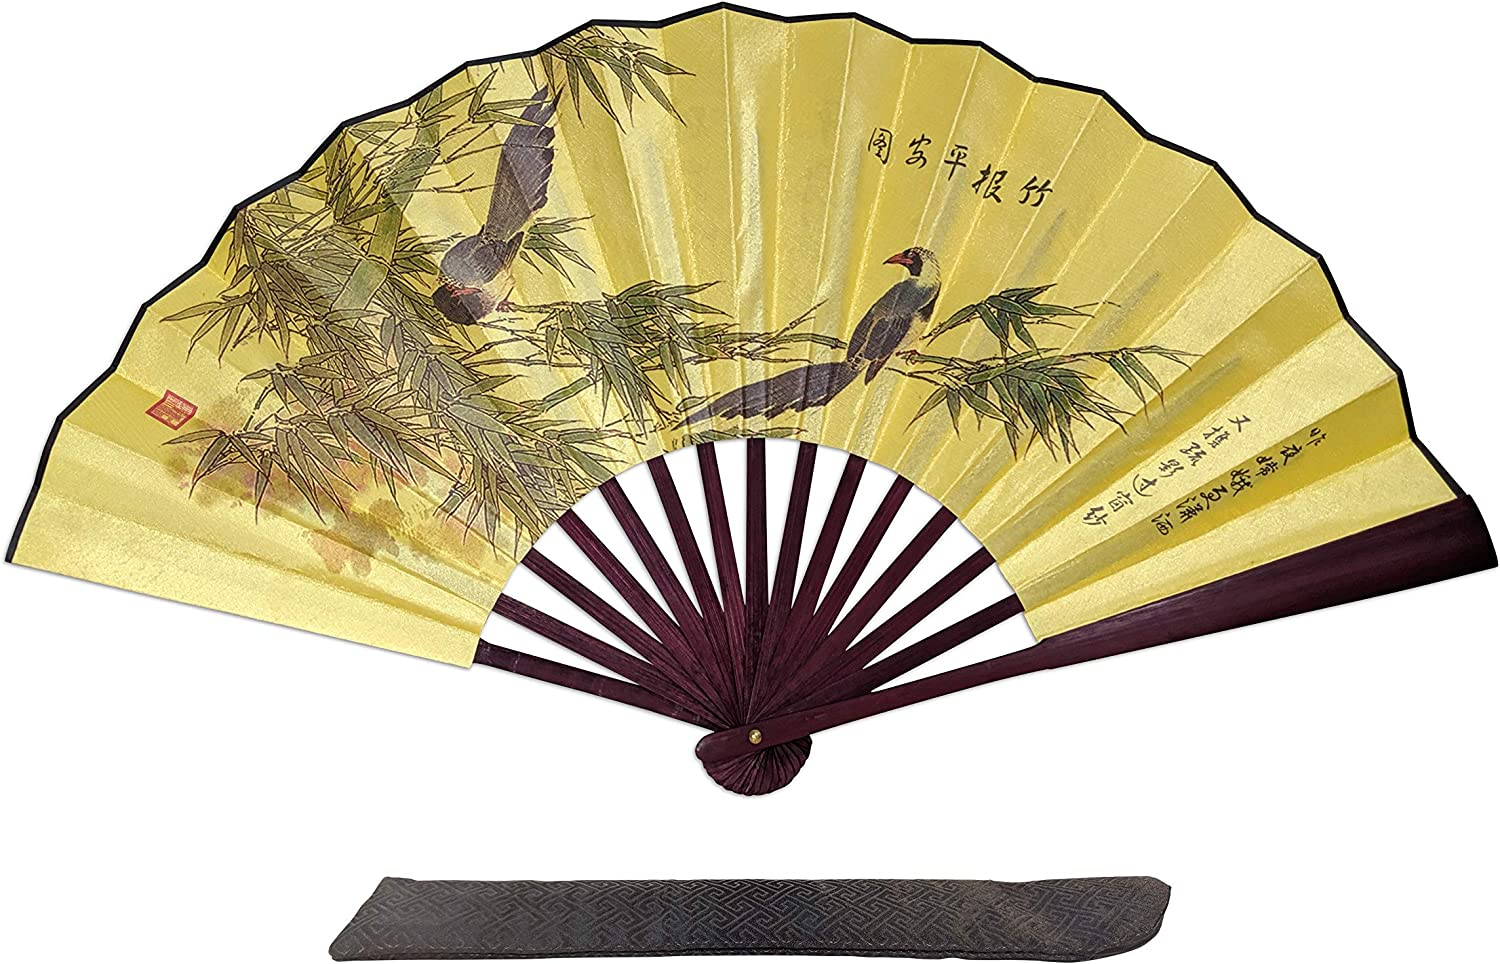 C&K Solutions Folding Hand Fan Chinese Gifts Bamboo Sheltering Birds Large Premium Quality Handheld Japanese Fans